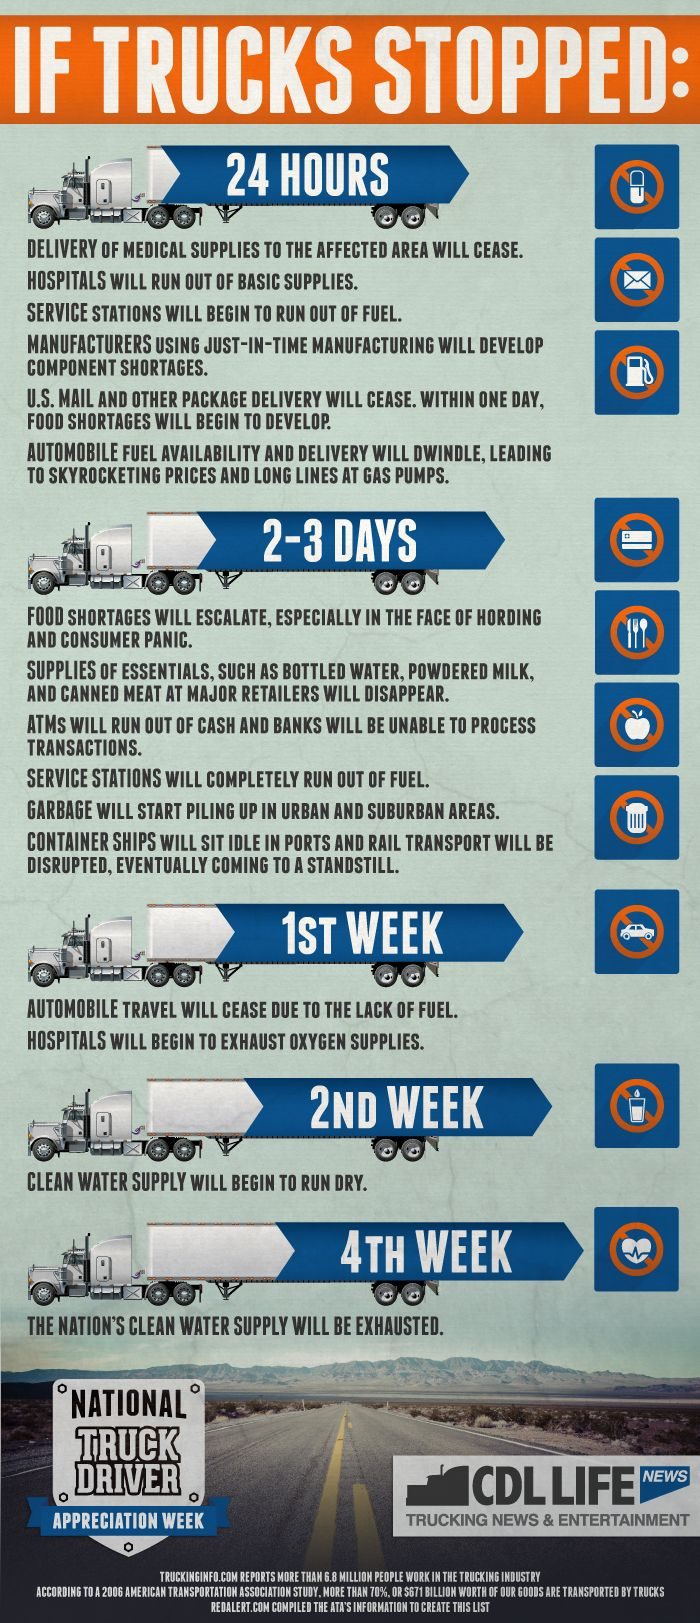 [Infographic] If trucks stopped transporting goods, this would happen